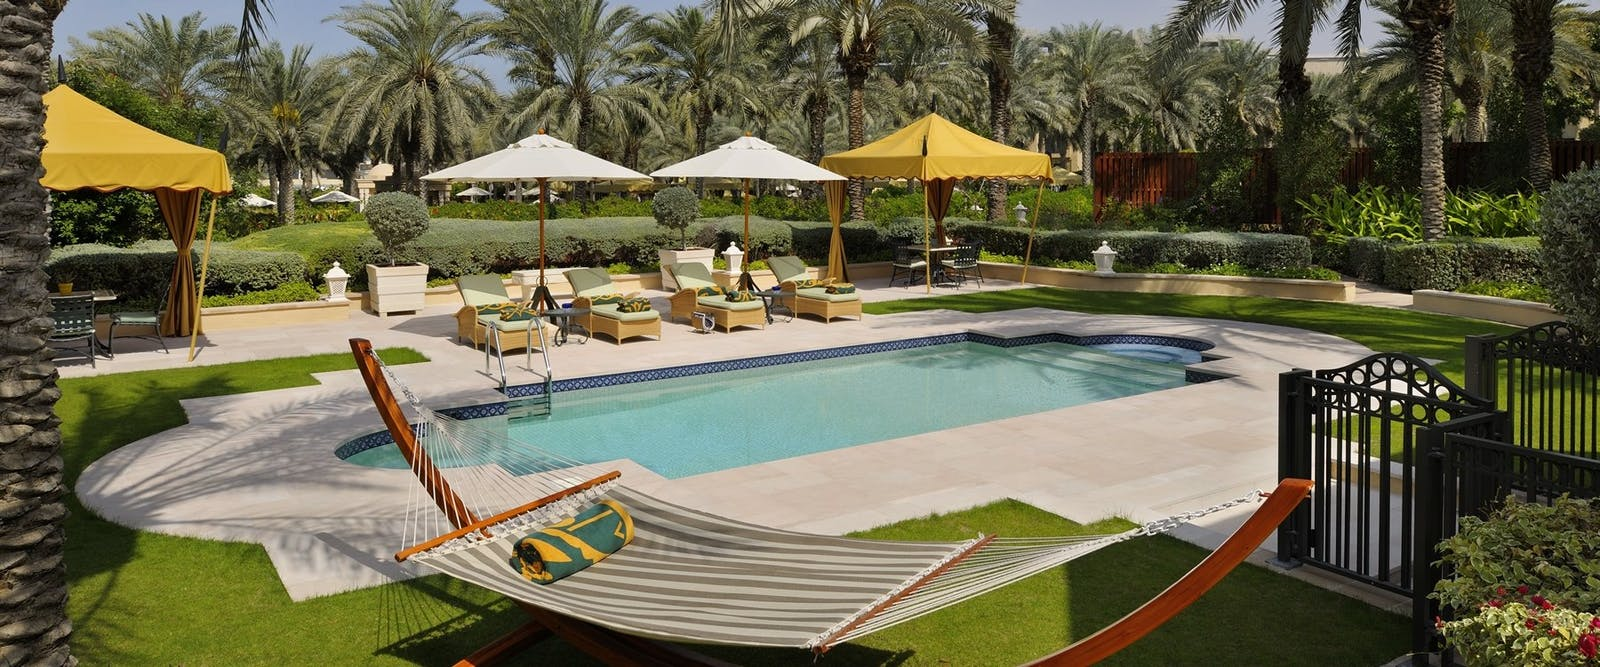 Beach Garden Villa Pool View at One&Only Royal Mirage - The Residence & Spa, Dubai